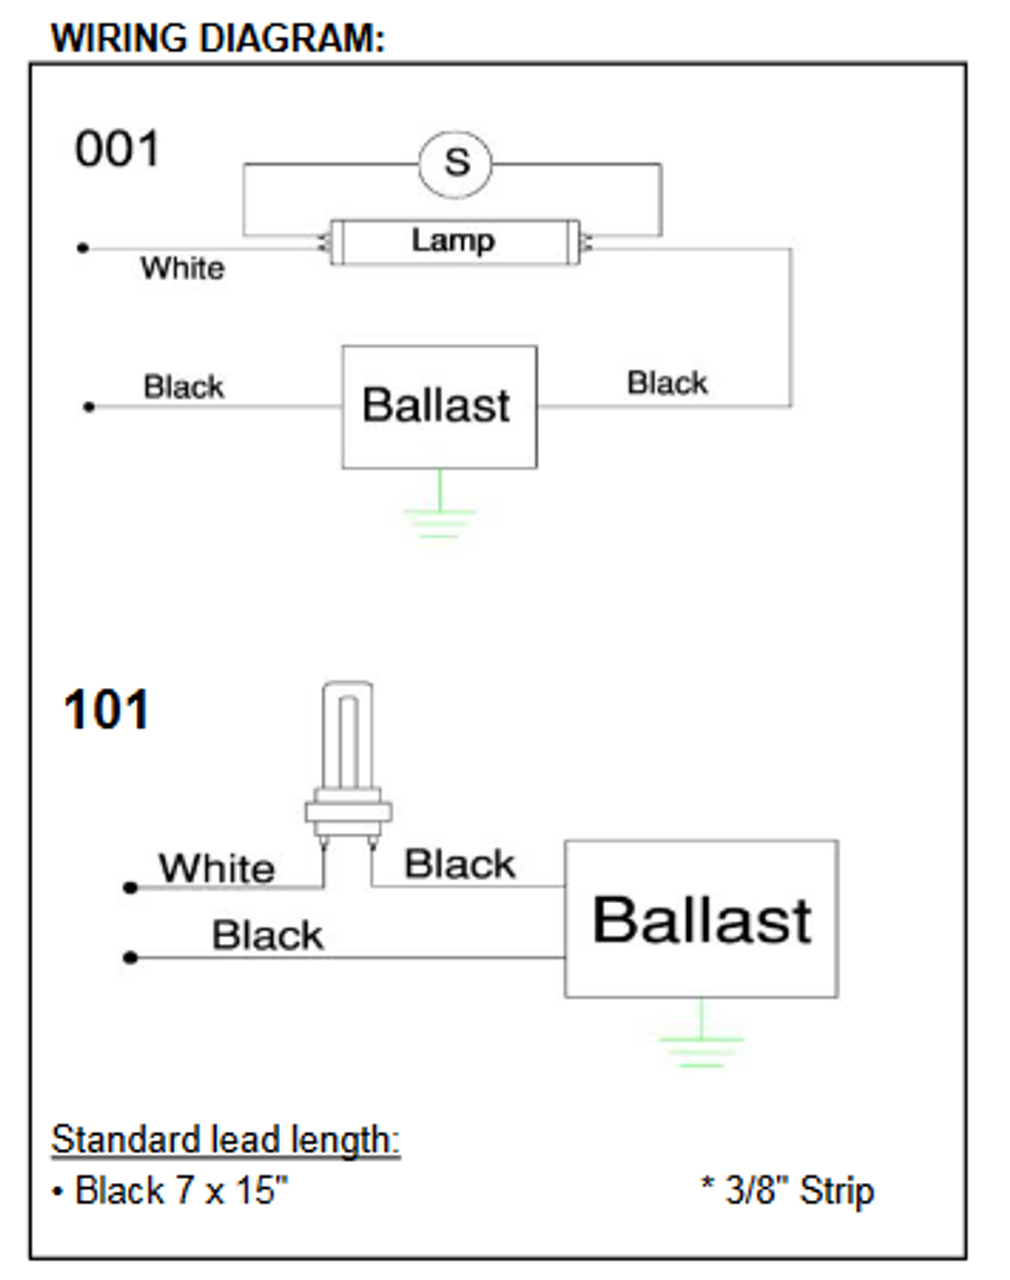 Fluorescent Emergency Ballast Wiring Diagram - Simple Wiring Diagram on cfl ballast circuit diagram, 0-10v dimming led diagram, emergency standby ballast, emergency light switch panel, backup battery ballast fluorescent diagram, emergency ballast installation, emergency exit cobra controls wire diagram, light circuit diagram, refrigerator parts diagram, fluorescent fixtures t5 circuit diagram, electronic ballast circuit diagram, emergency ballast circuit, emergency battery ballast wiring, emergency ballast troubleshooting,